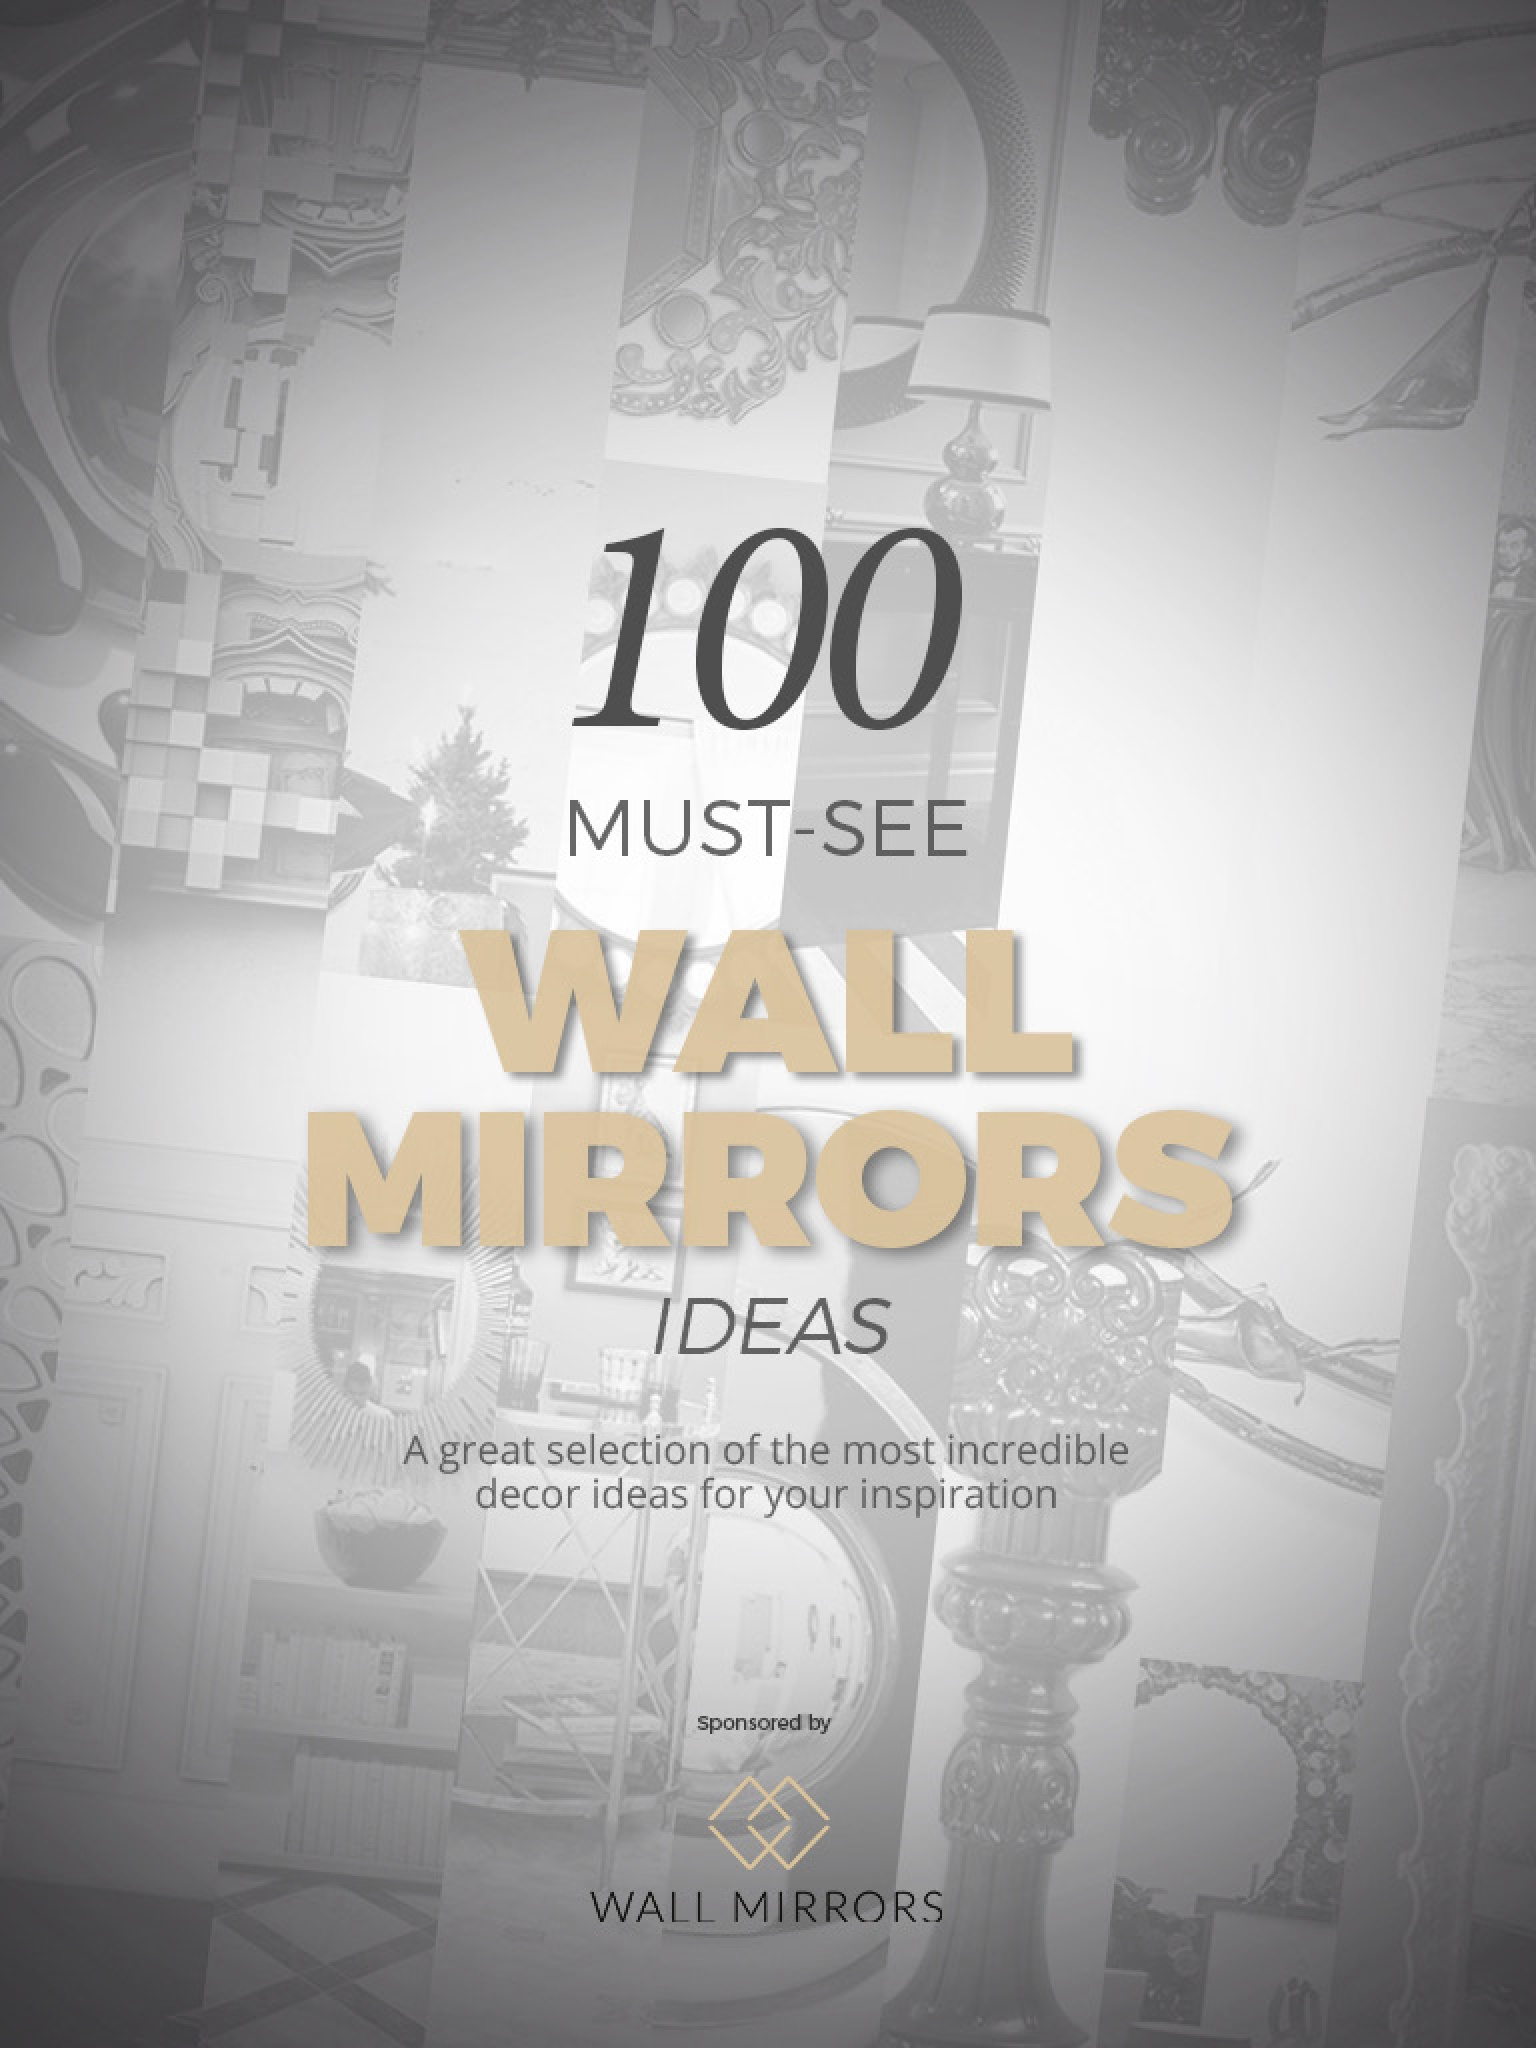 100 Wall Mirror Decorating Ideas For a Modern Interior wall mirror decorating ideas 100 Wall Mirror Decorating Ideas For a Modern Interior Wall Mirror Decorating Ideas For a Modern Interior 1